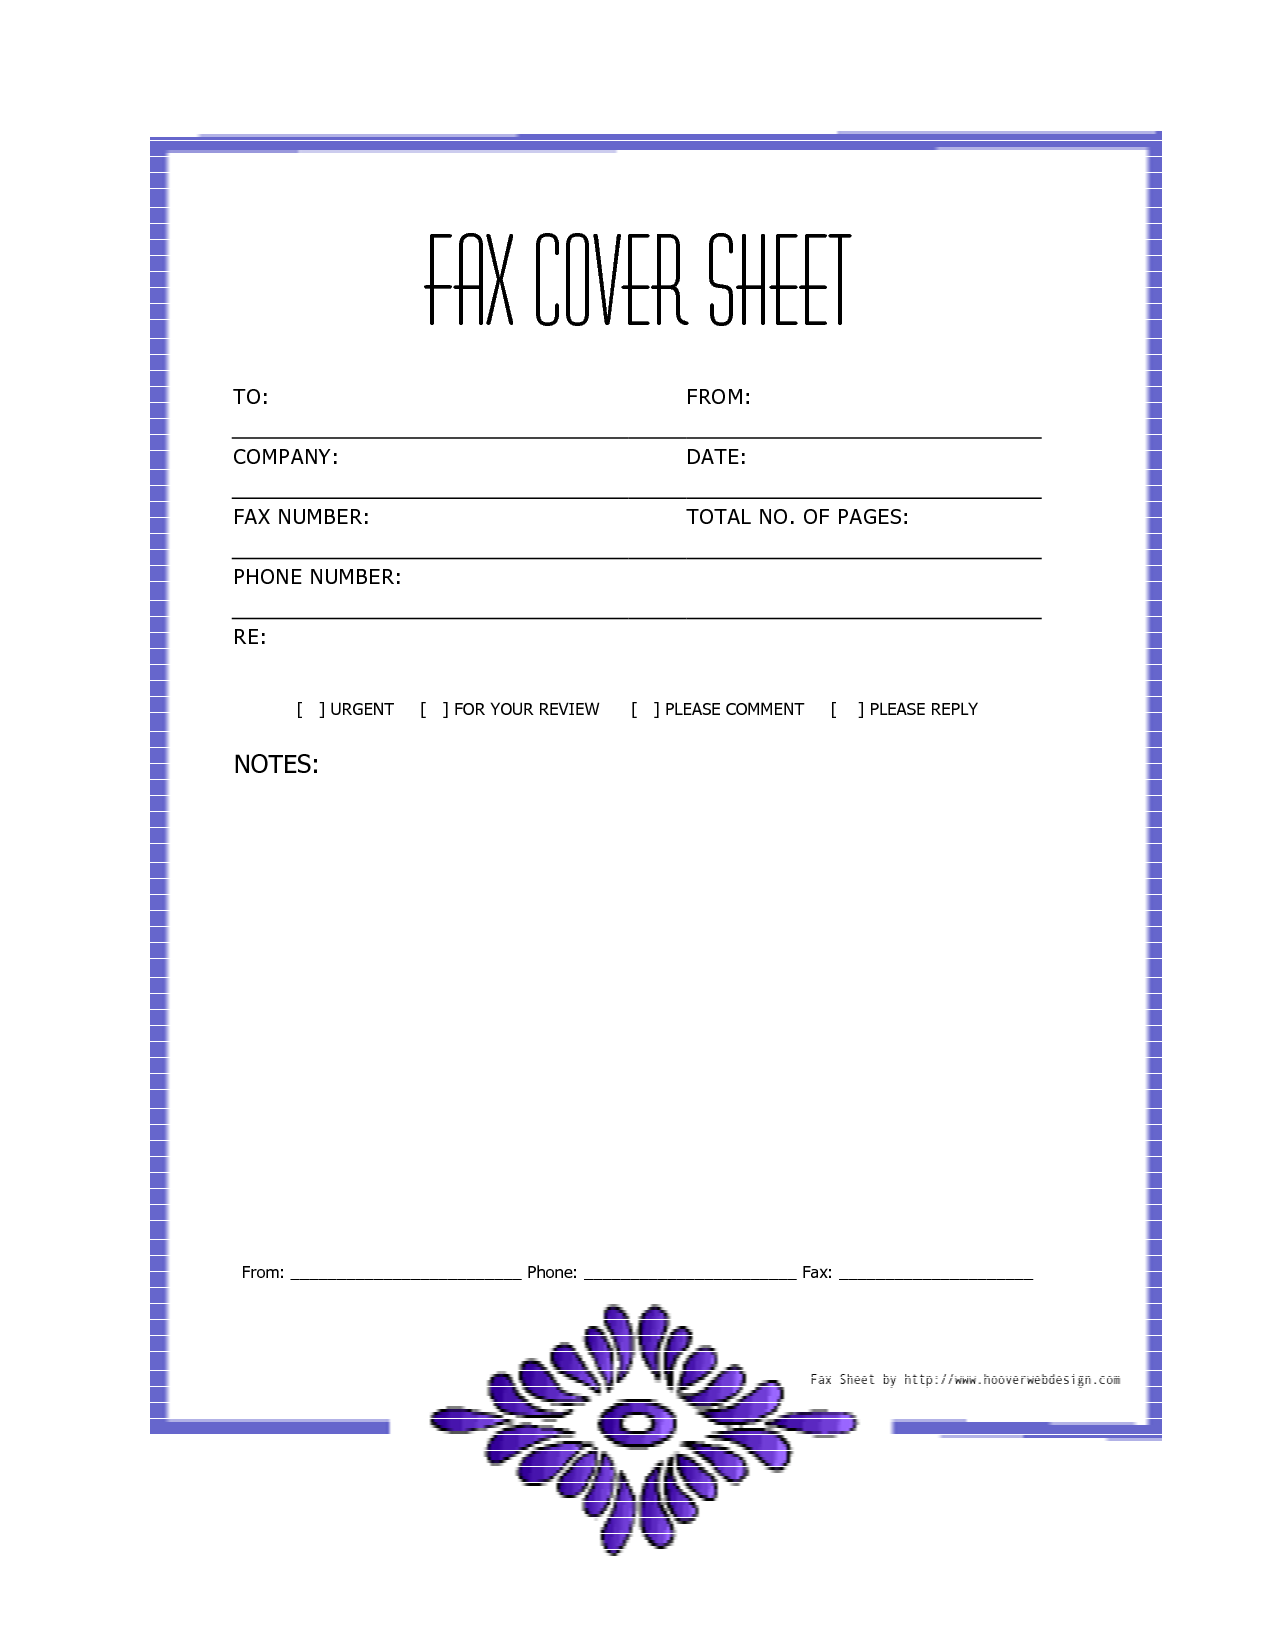 Free Downloads Fax Covers Sheets | Free Printable Fax Cover Sheet